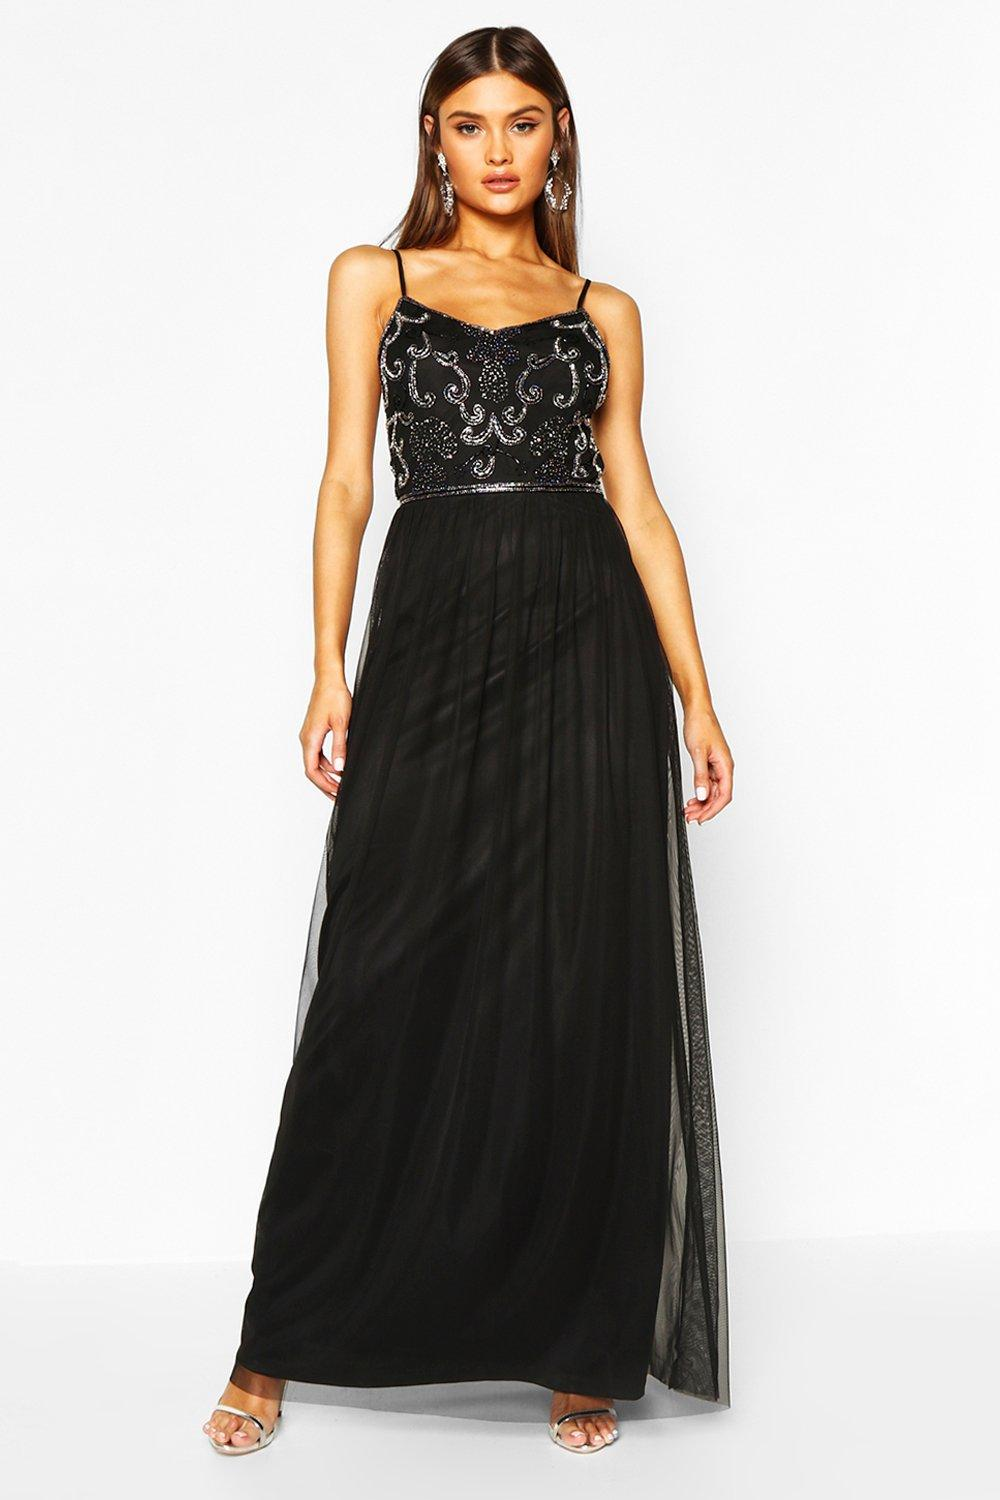 1930s Evening Dresses | Old Hollywood Silver Screen Dresses Womens Boutique Embellished Prom Maxi Dress - Black - 8 $28.00 AT vintagedancer.com